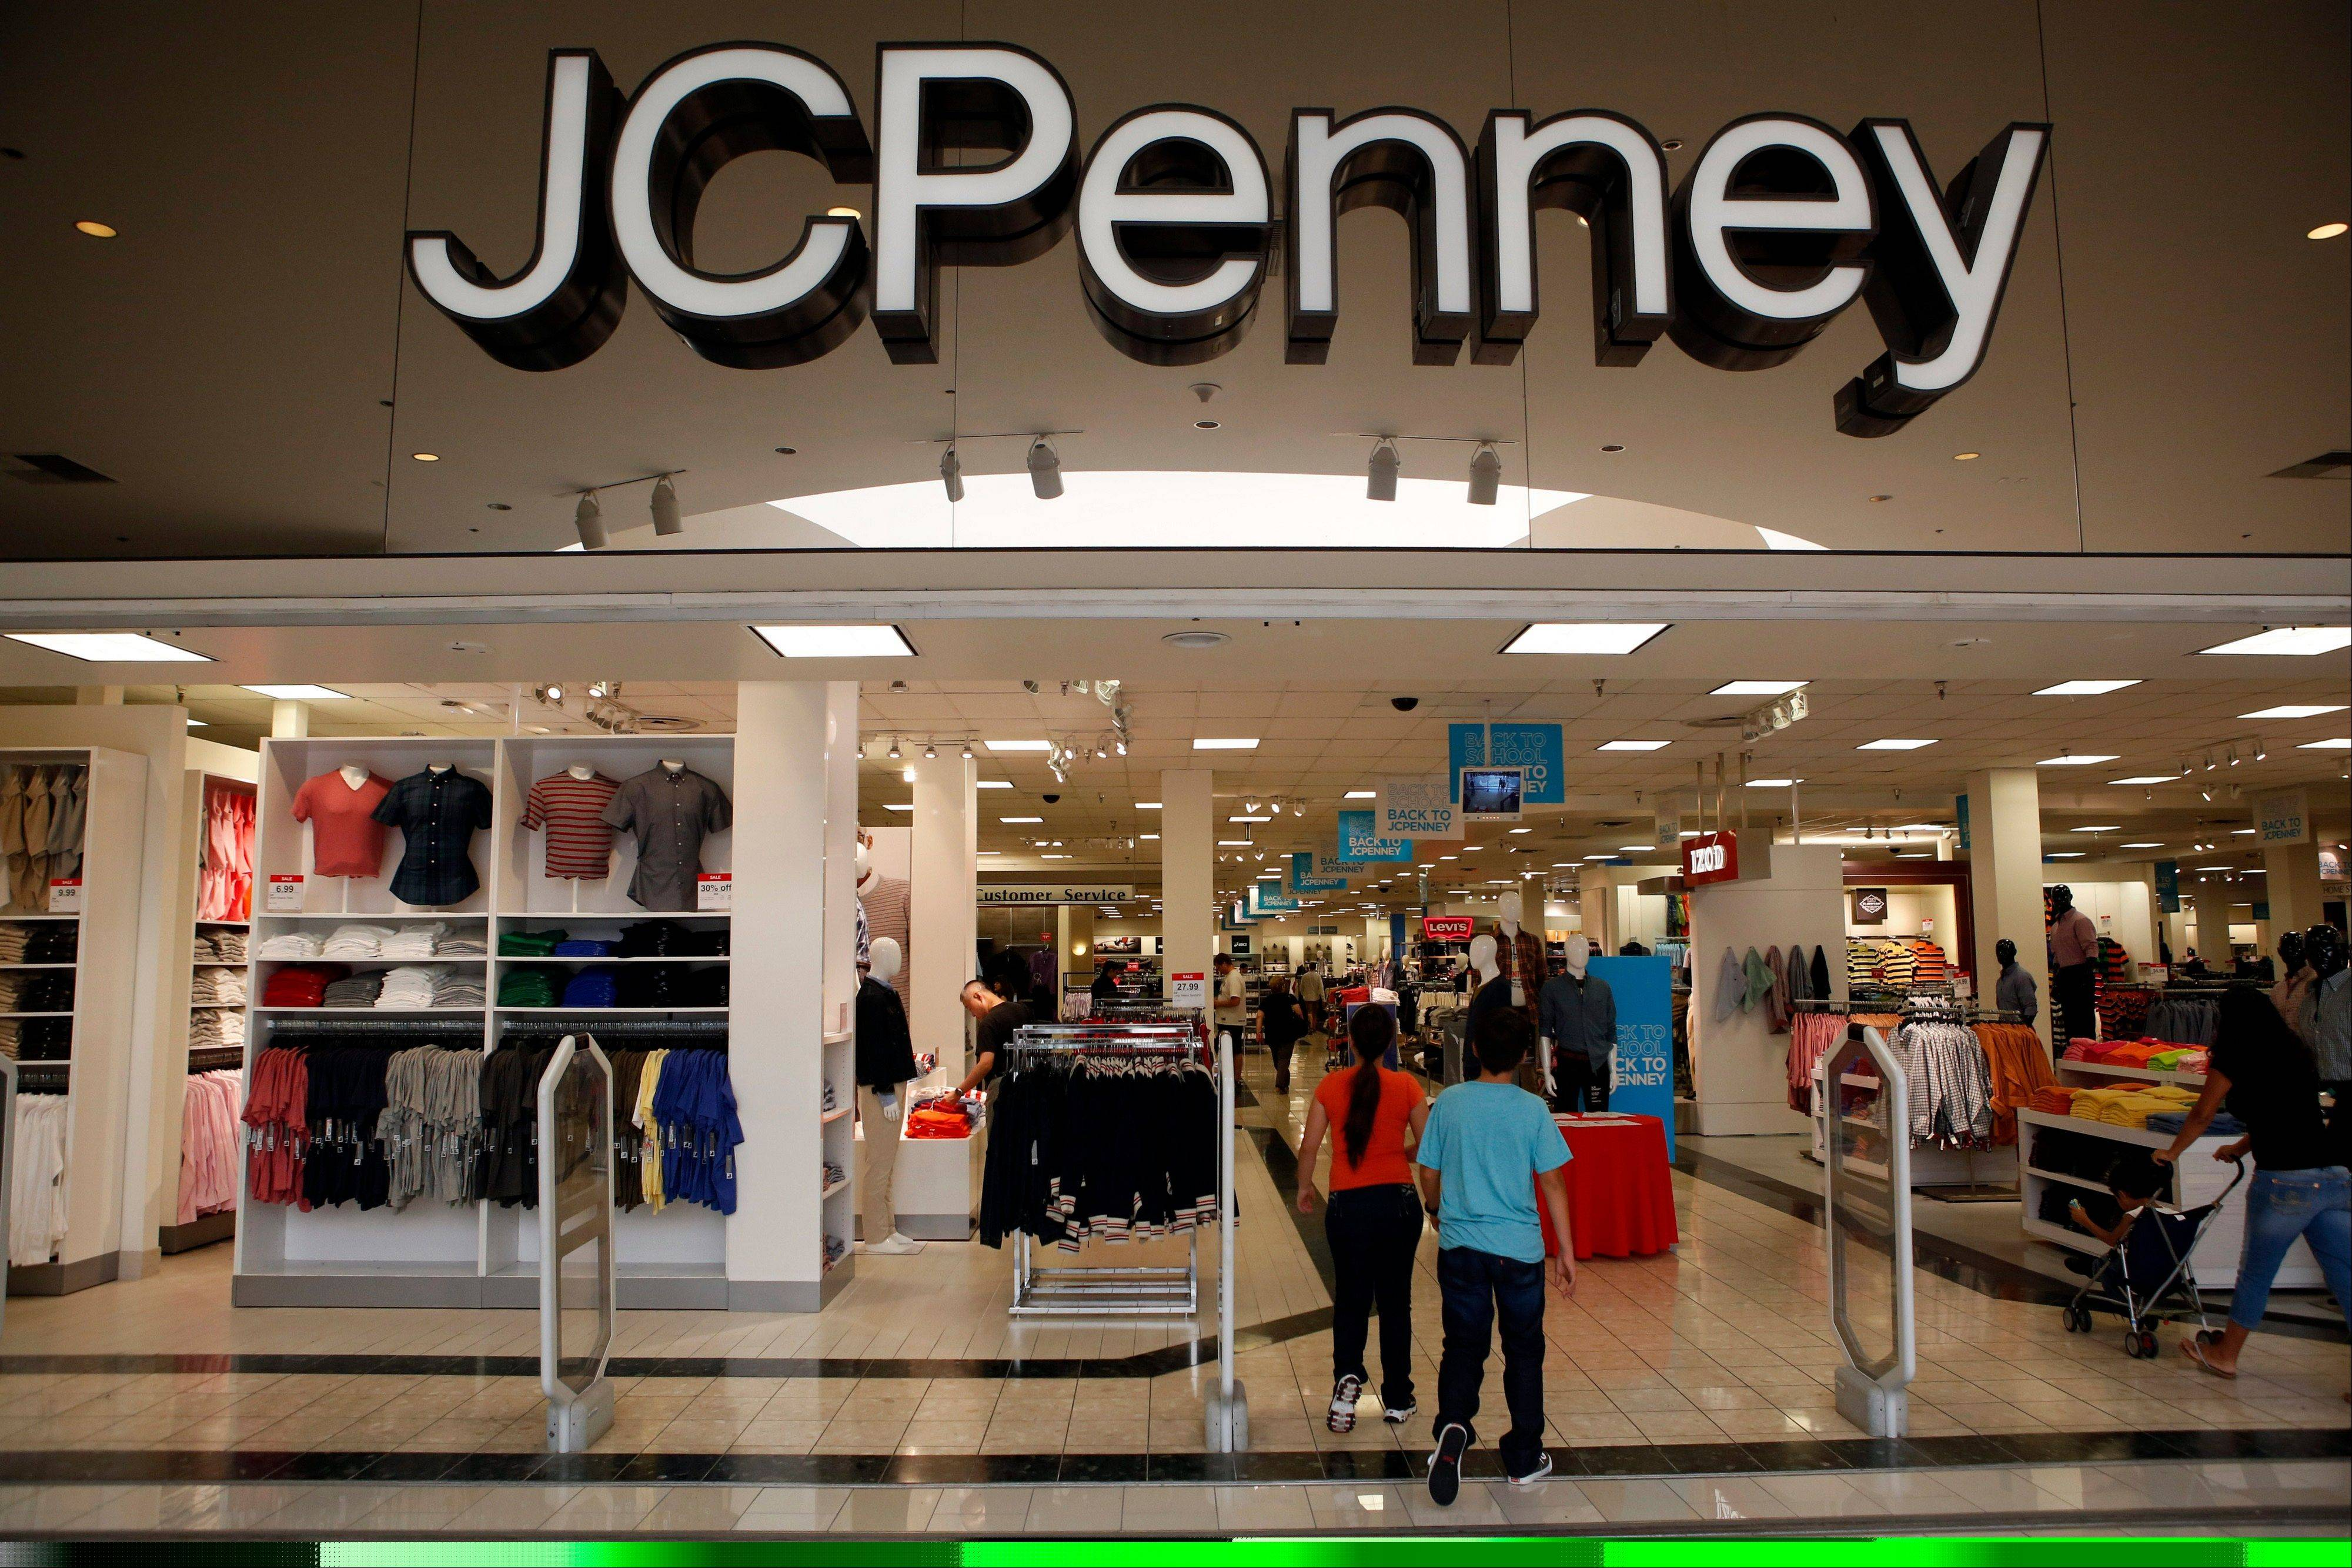 J.C. Penney Co. plans to close 33 stores and eliminate about 2,000 jobs to help save $65 million a year. The only store in the Chicago area designated to close is the one at Stratford Square Mall in Bloomingdale.